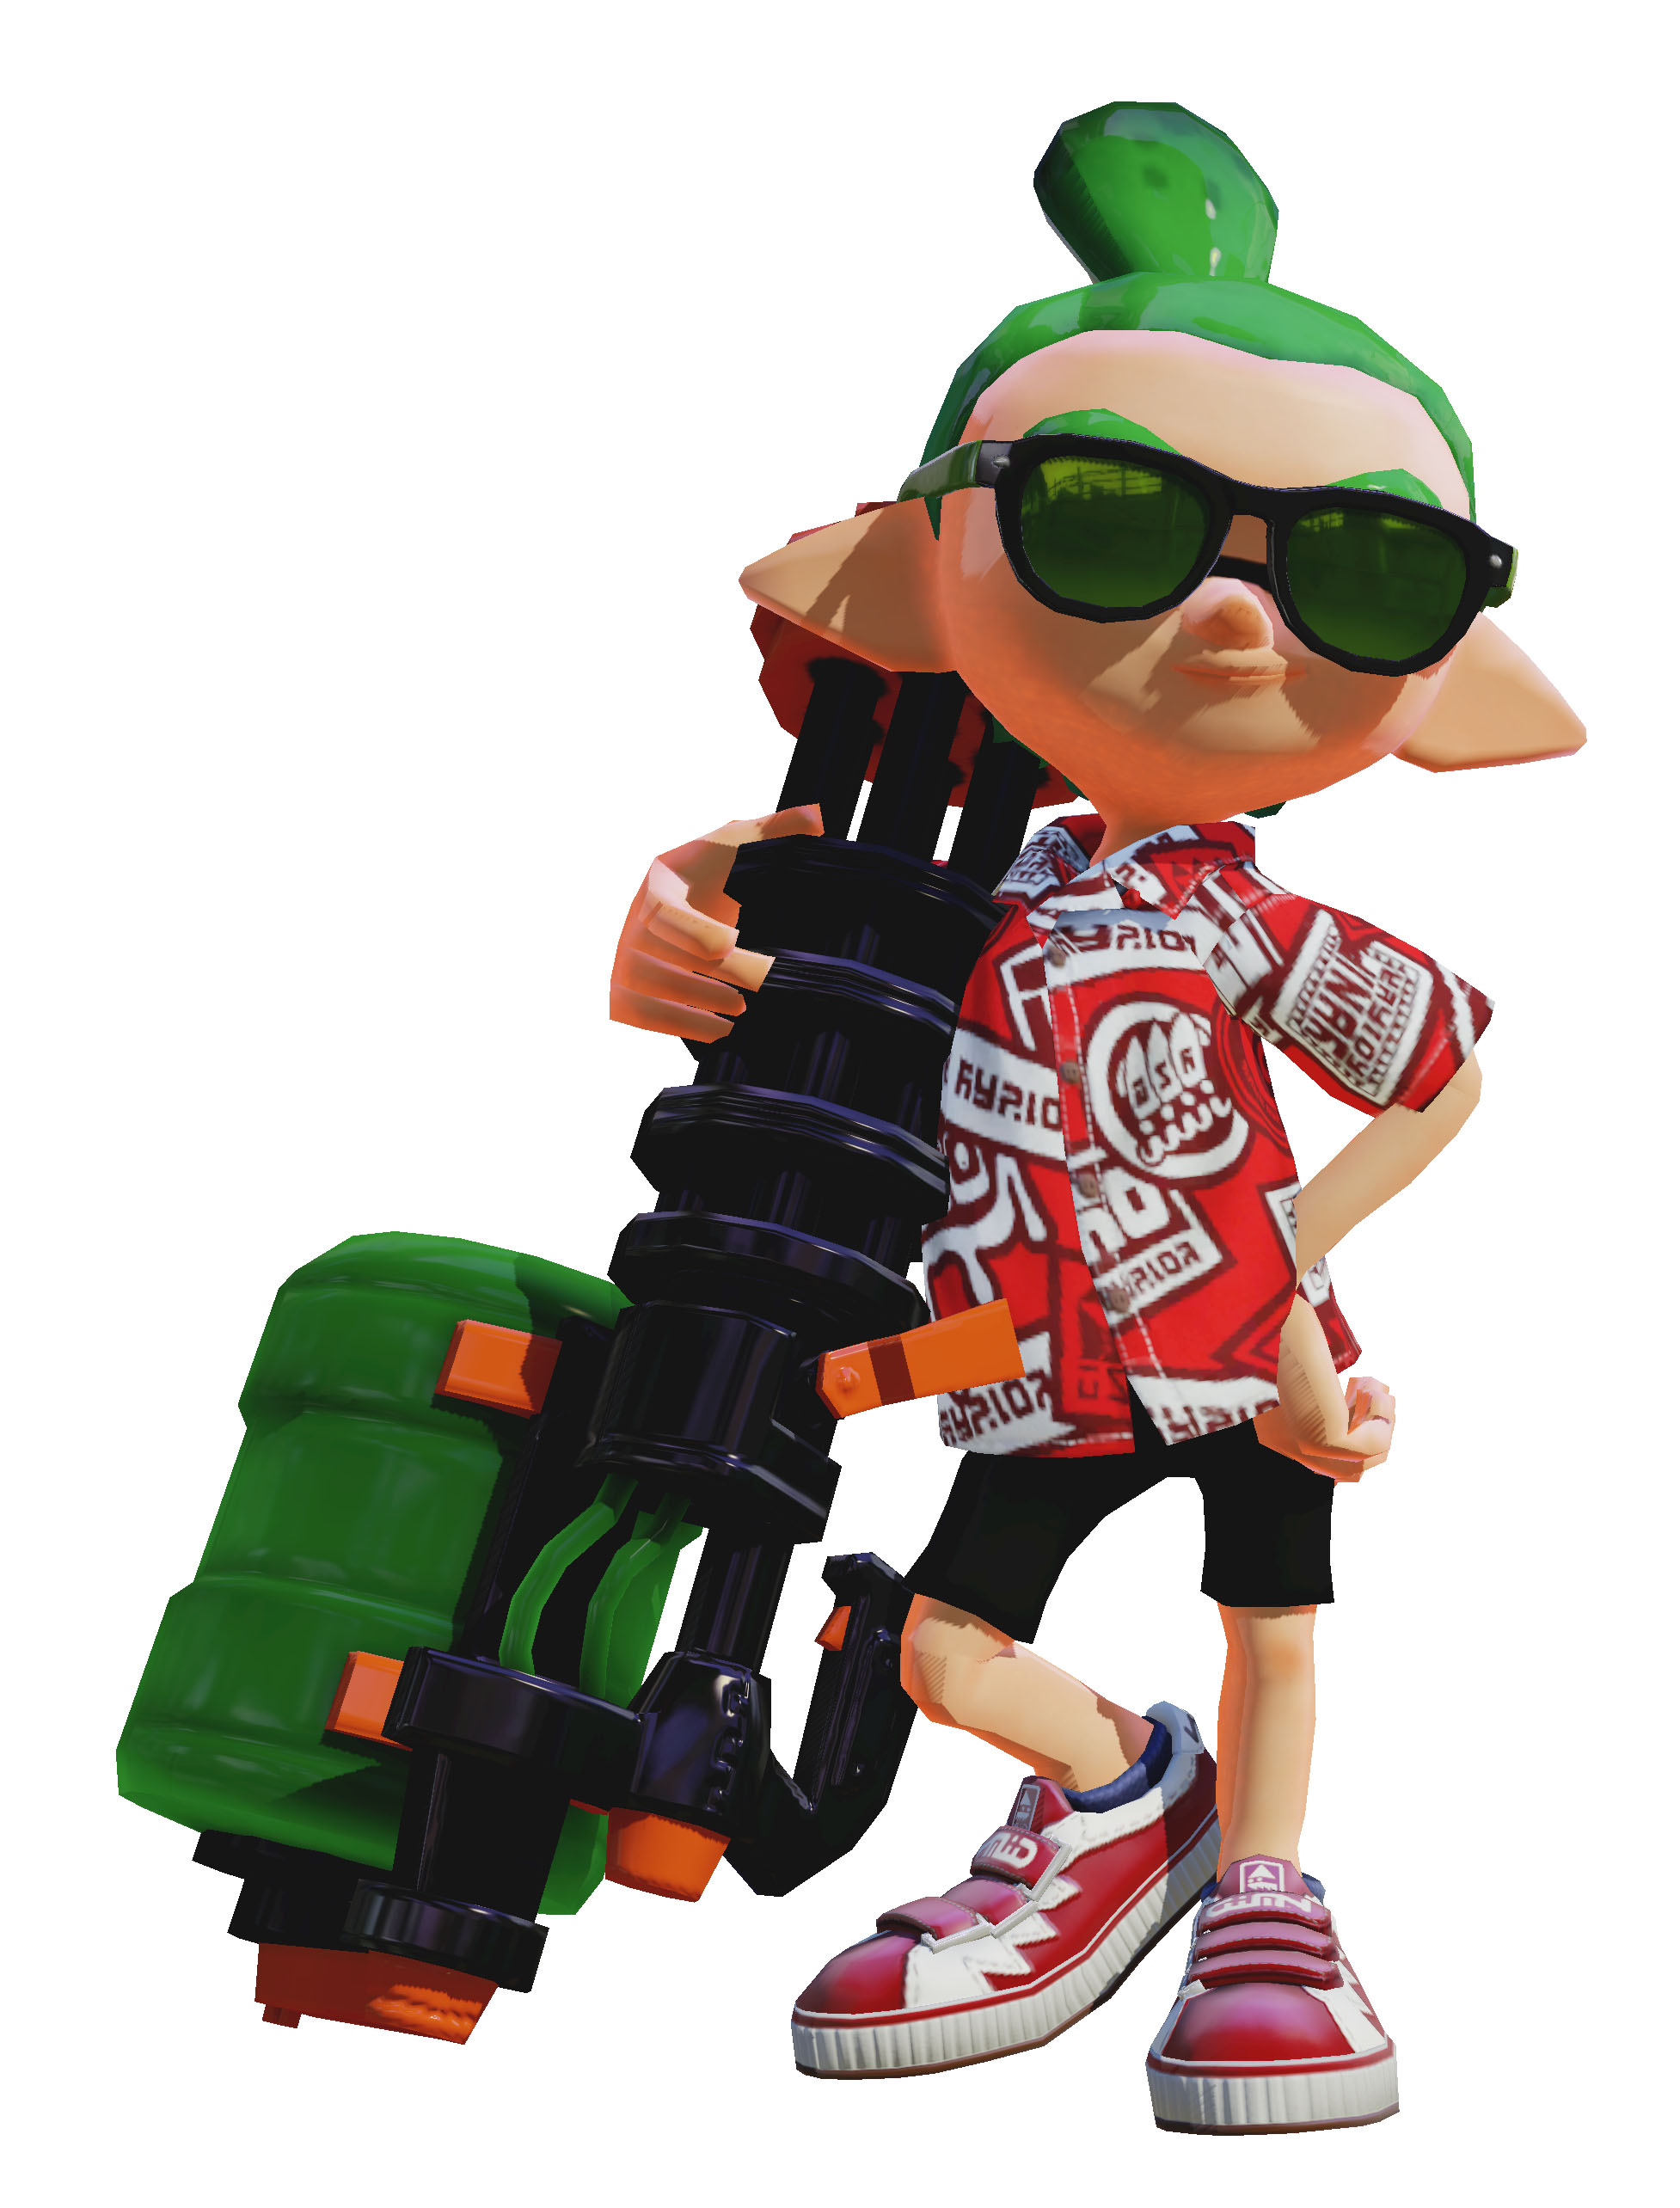 WiiU_Splatoon_artwork_Splatling.jpg